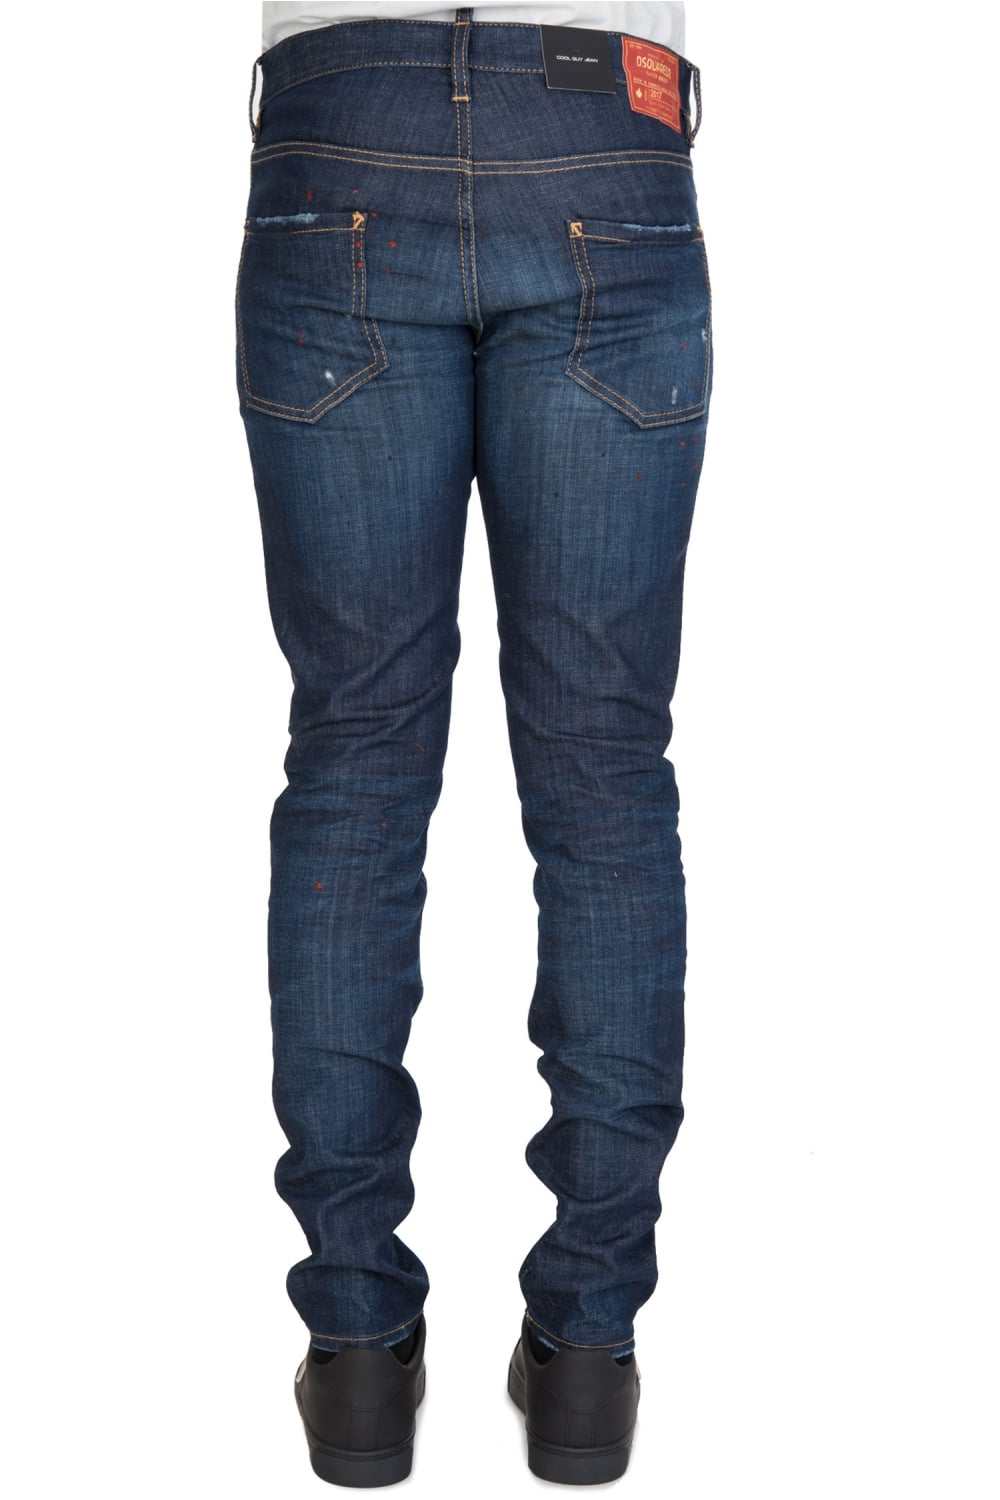 Essentials Jeans Womens